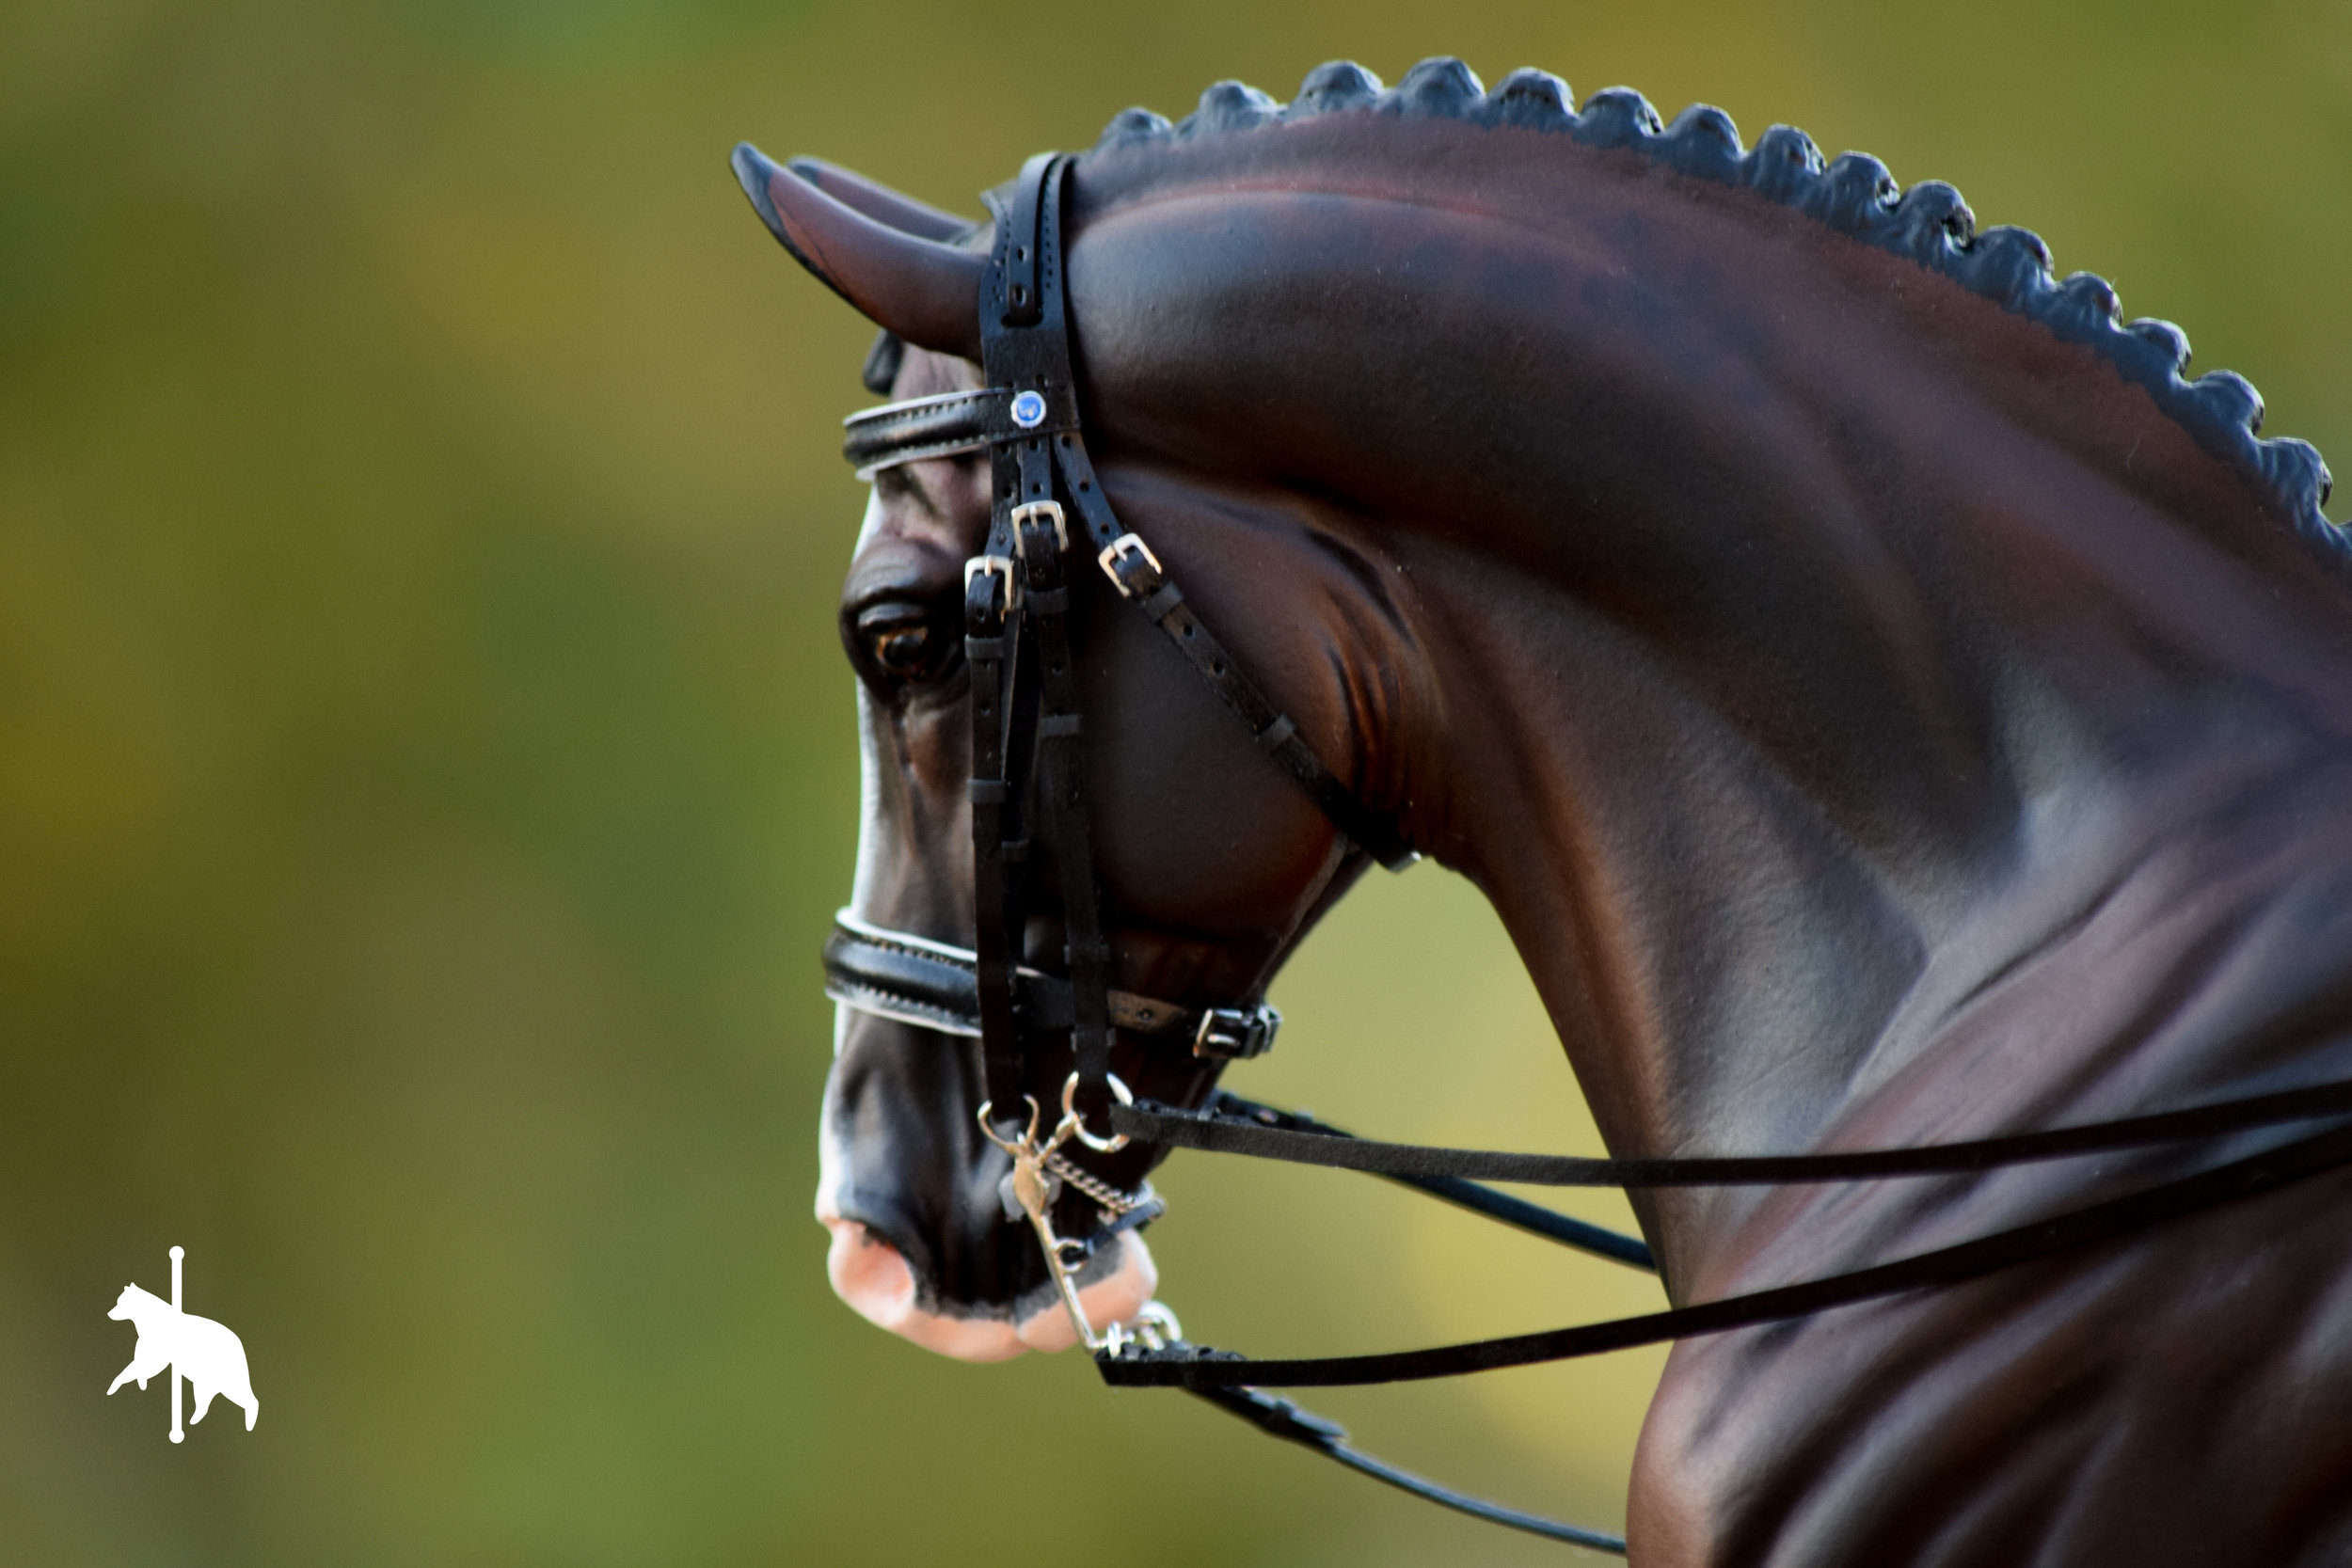 dressagebridle7.17.17WM-12.jpg